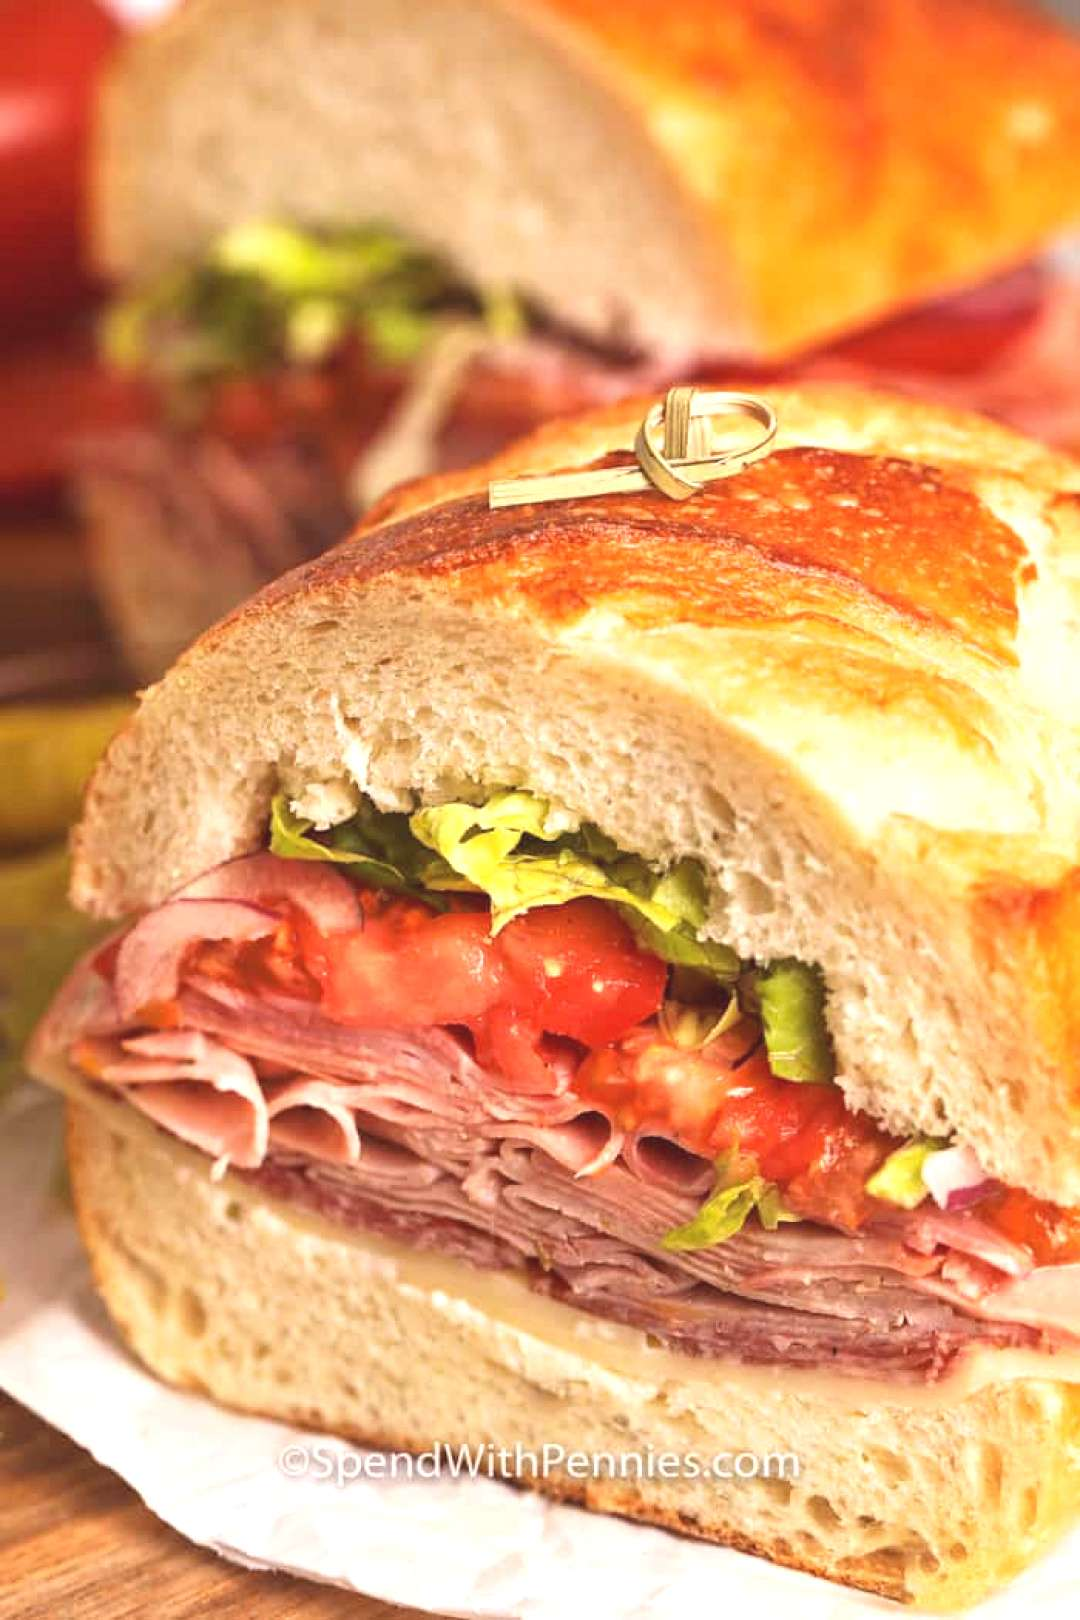 This Italian Sub Sandwich is quick and easy to make with ingredients like cheese, 3 meats, and fres